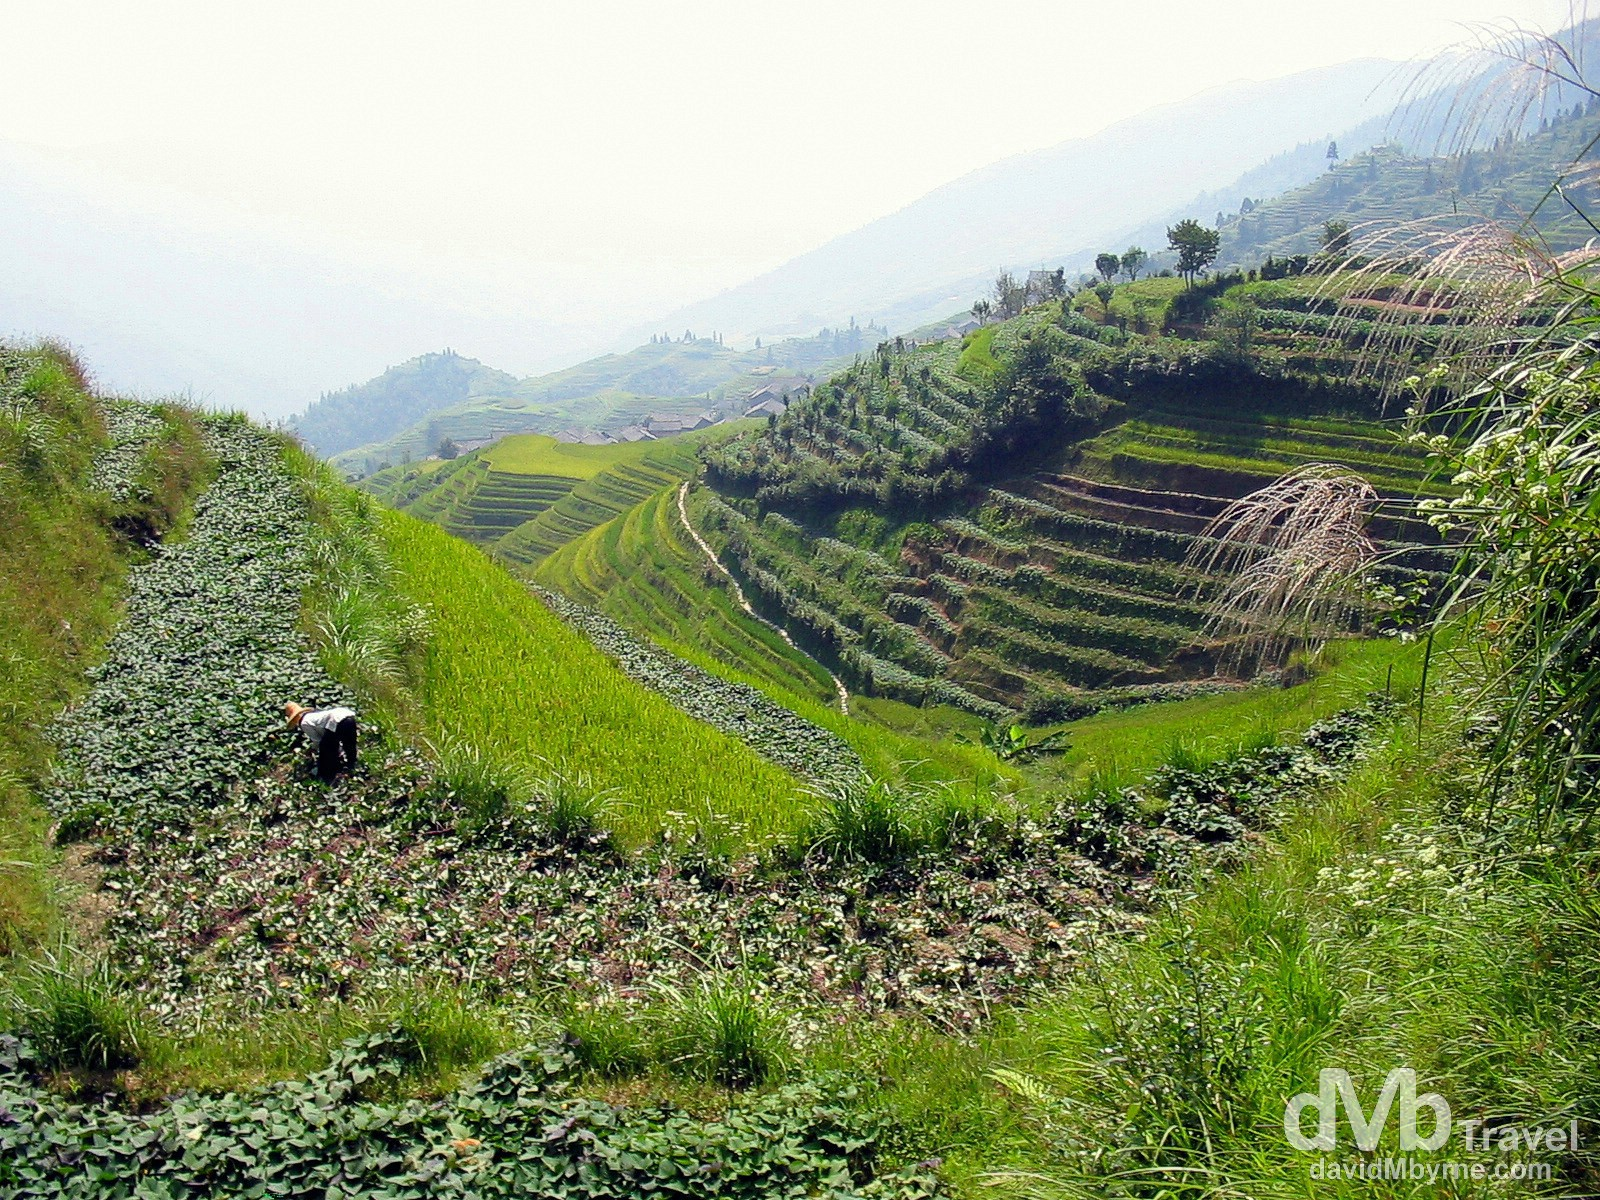 Tending to crops in the hills over Ping An Zhuang minority village, Longji Mountains, Guangxi Province, Southern China. September 15th, 2004.